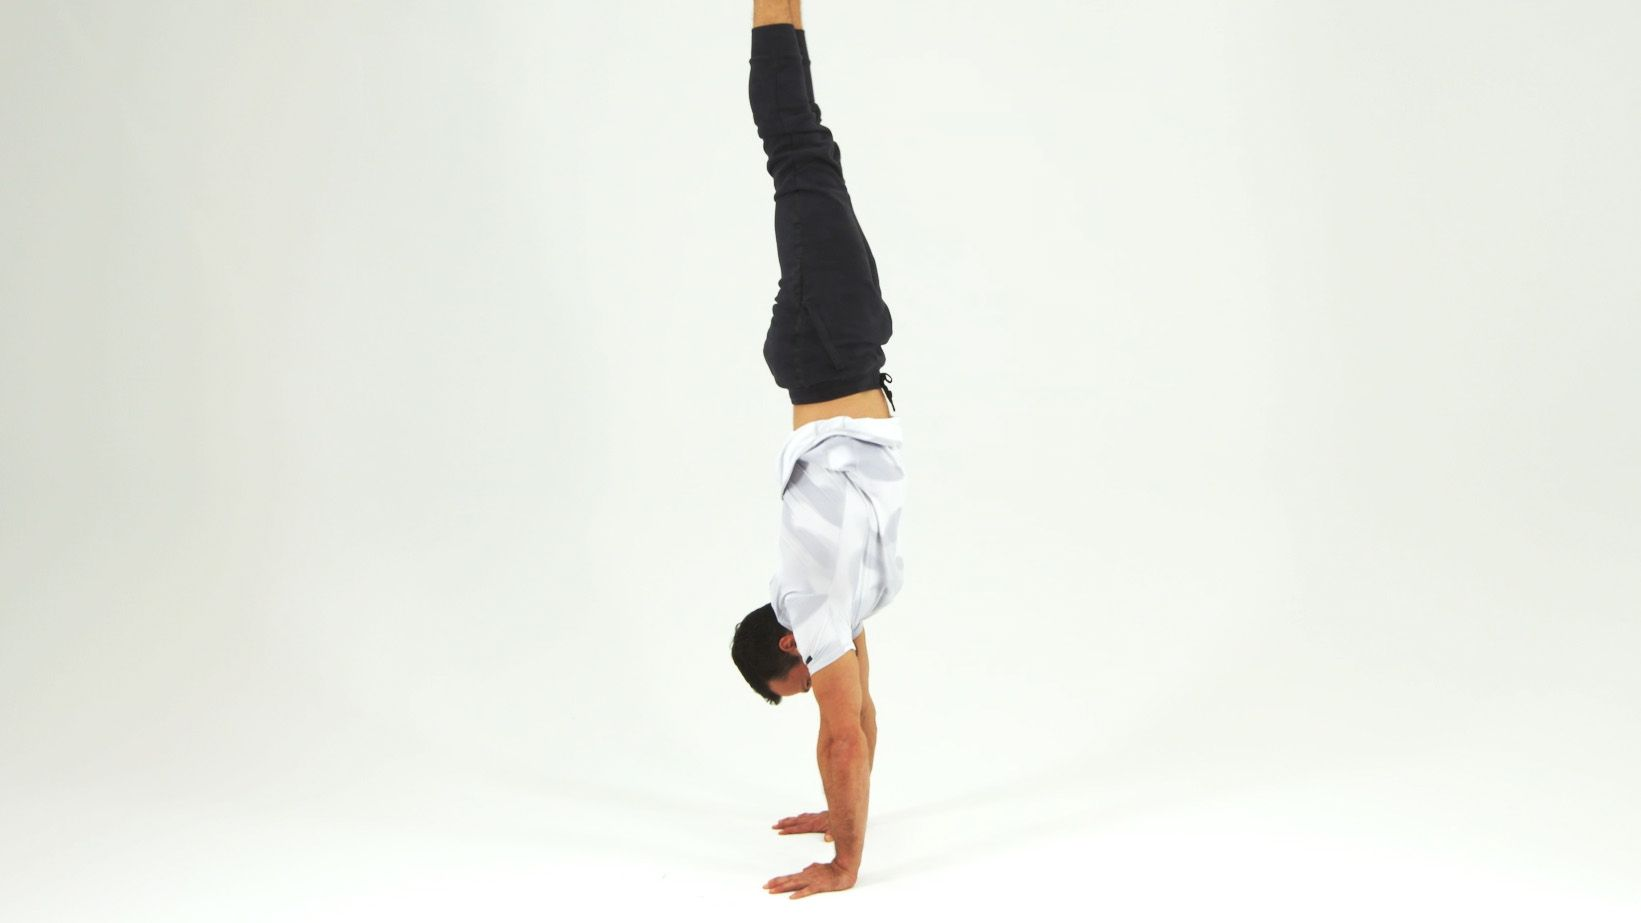 How to Master the Handstand